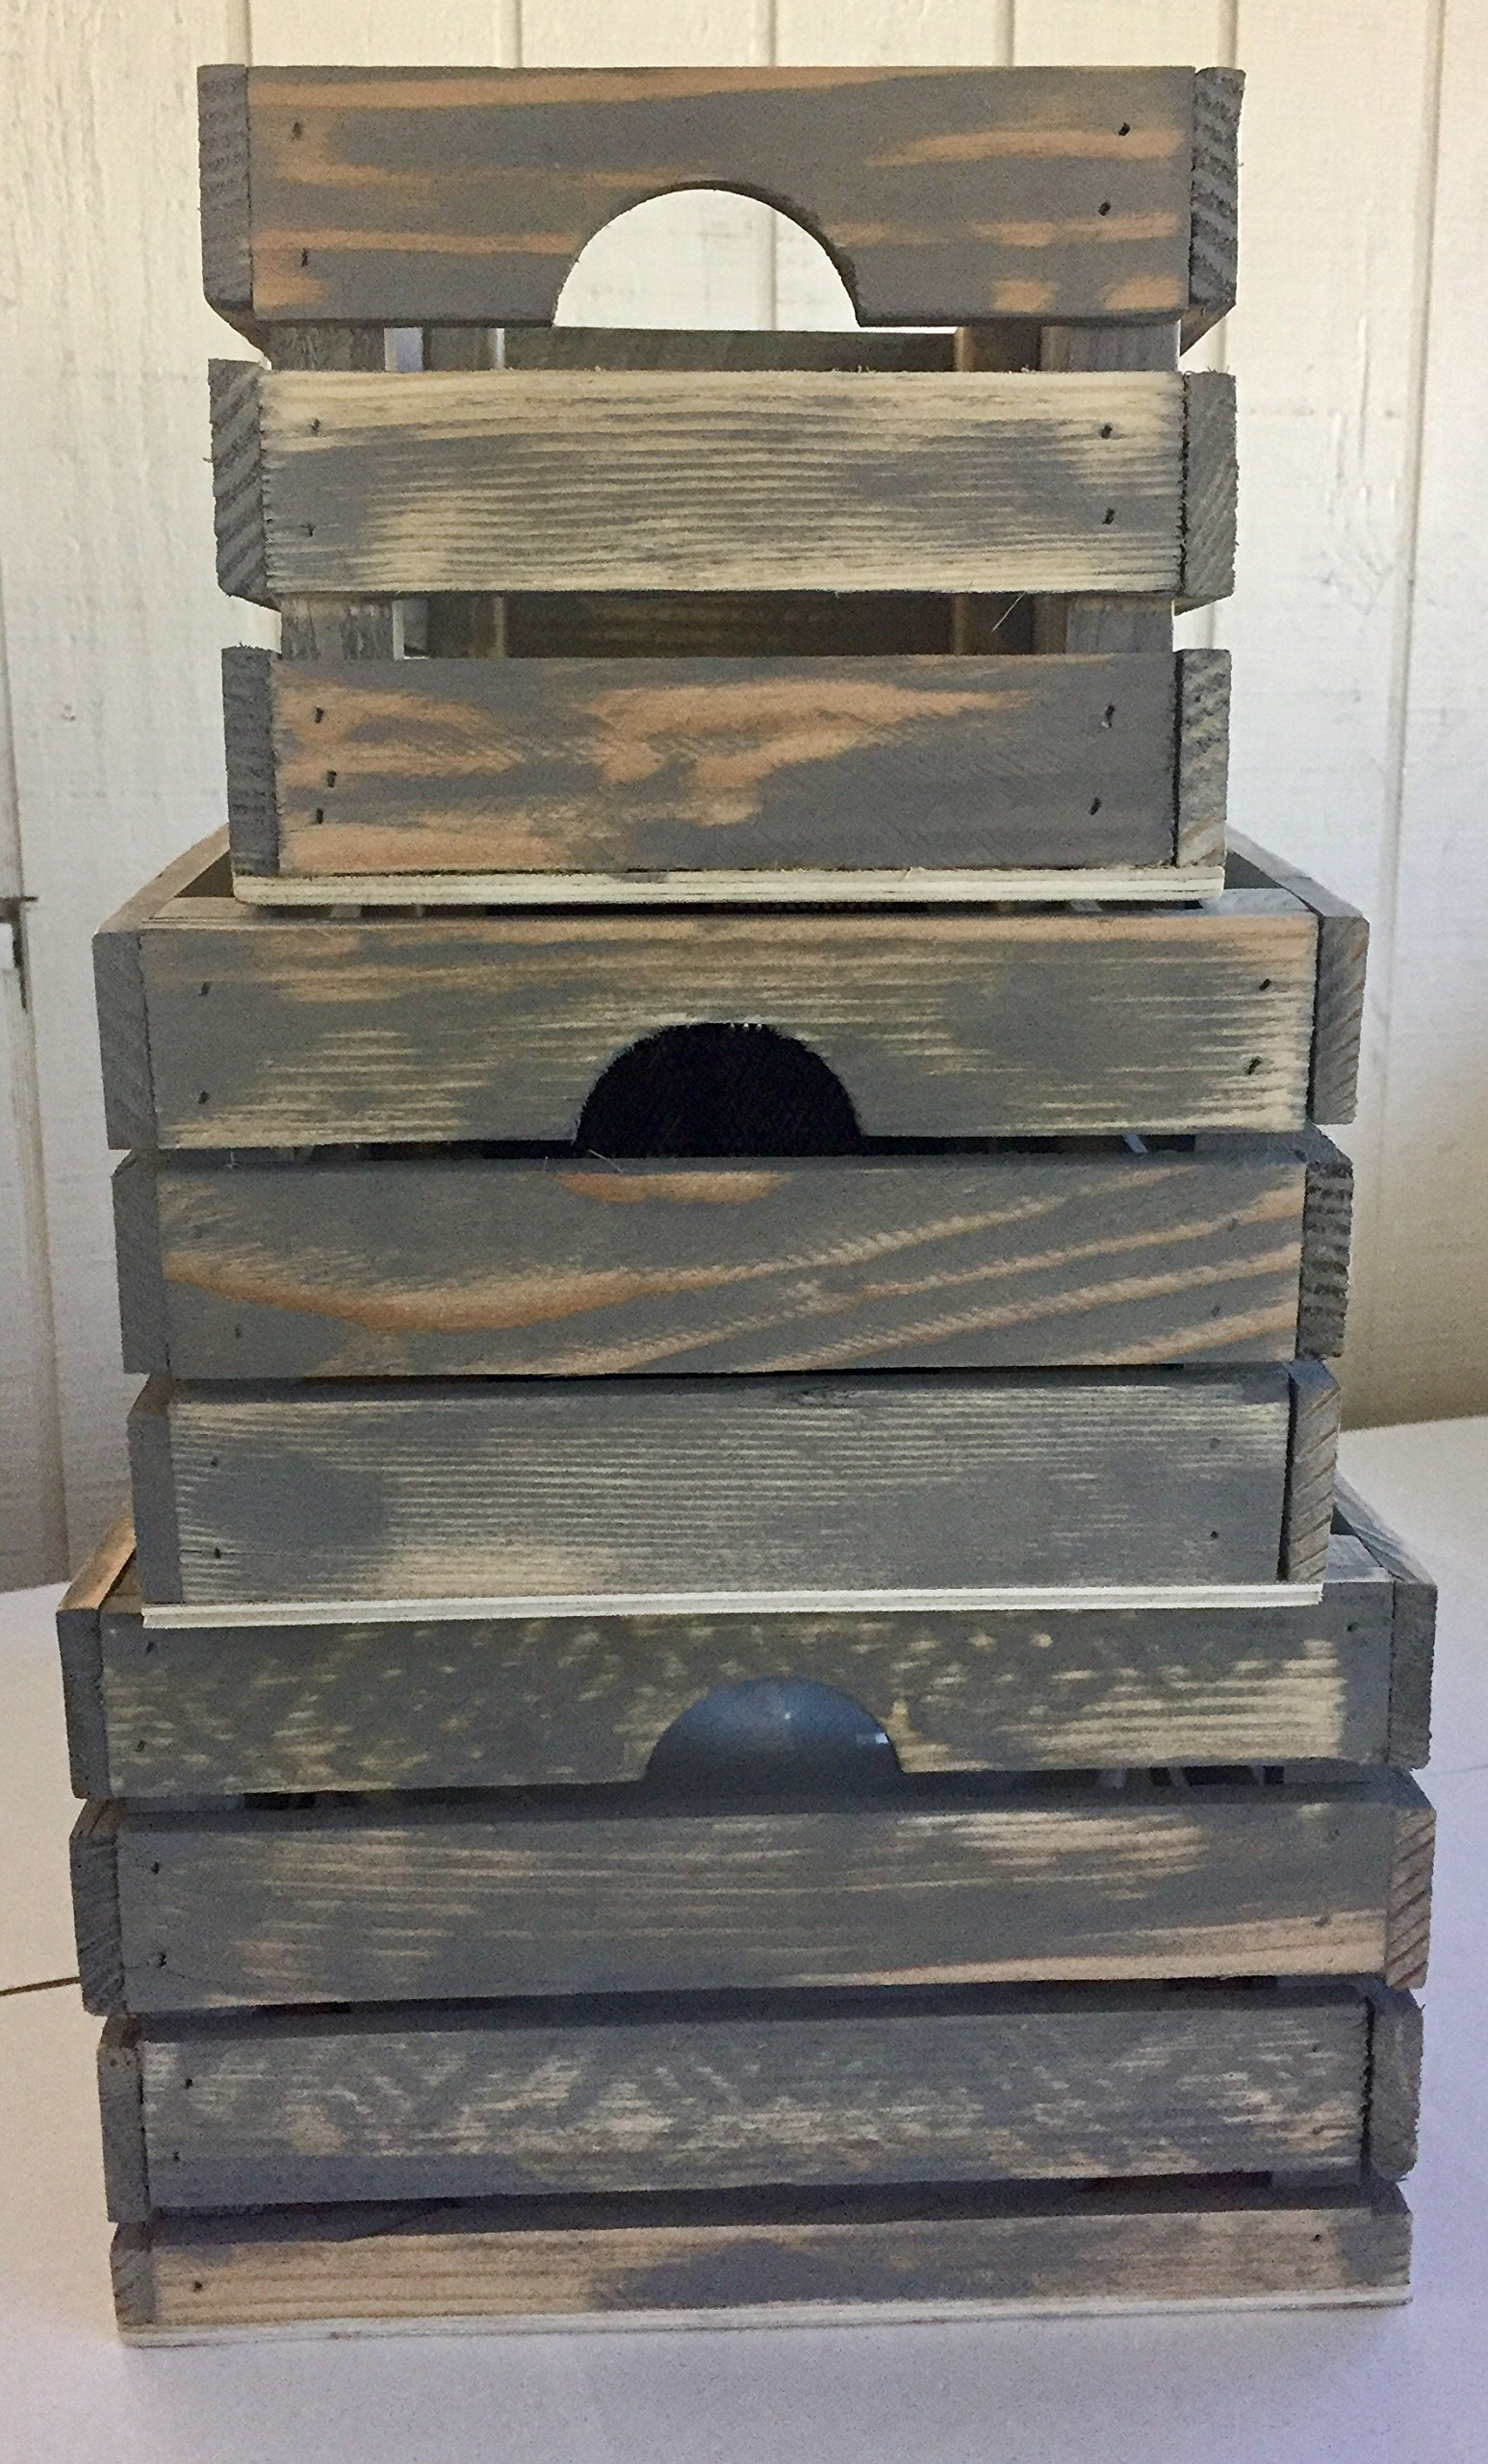 Winship Stake and Lath, Inc. Rustic Decorative Wood Crates (Set of 3) - Cottage Grey Distressed by Winship Stake and Lath, Inc. (Image #5)